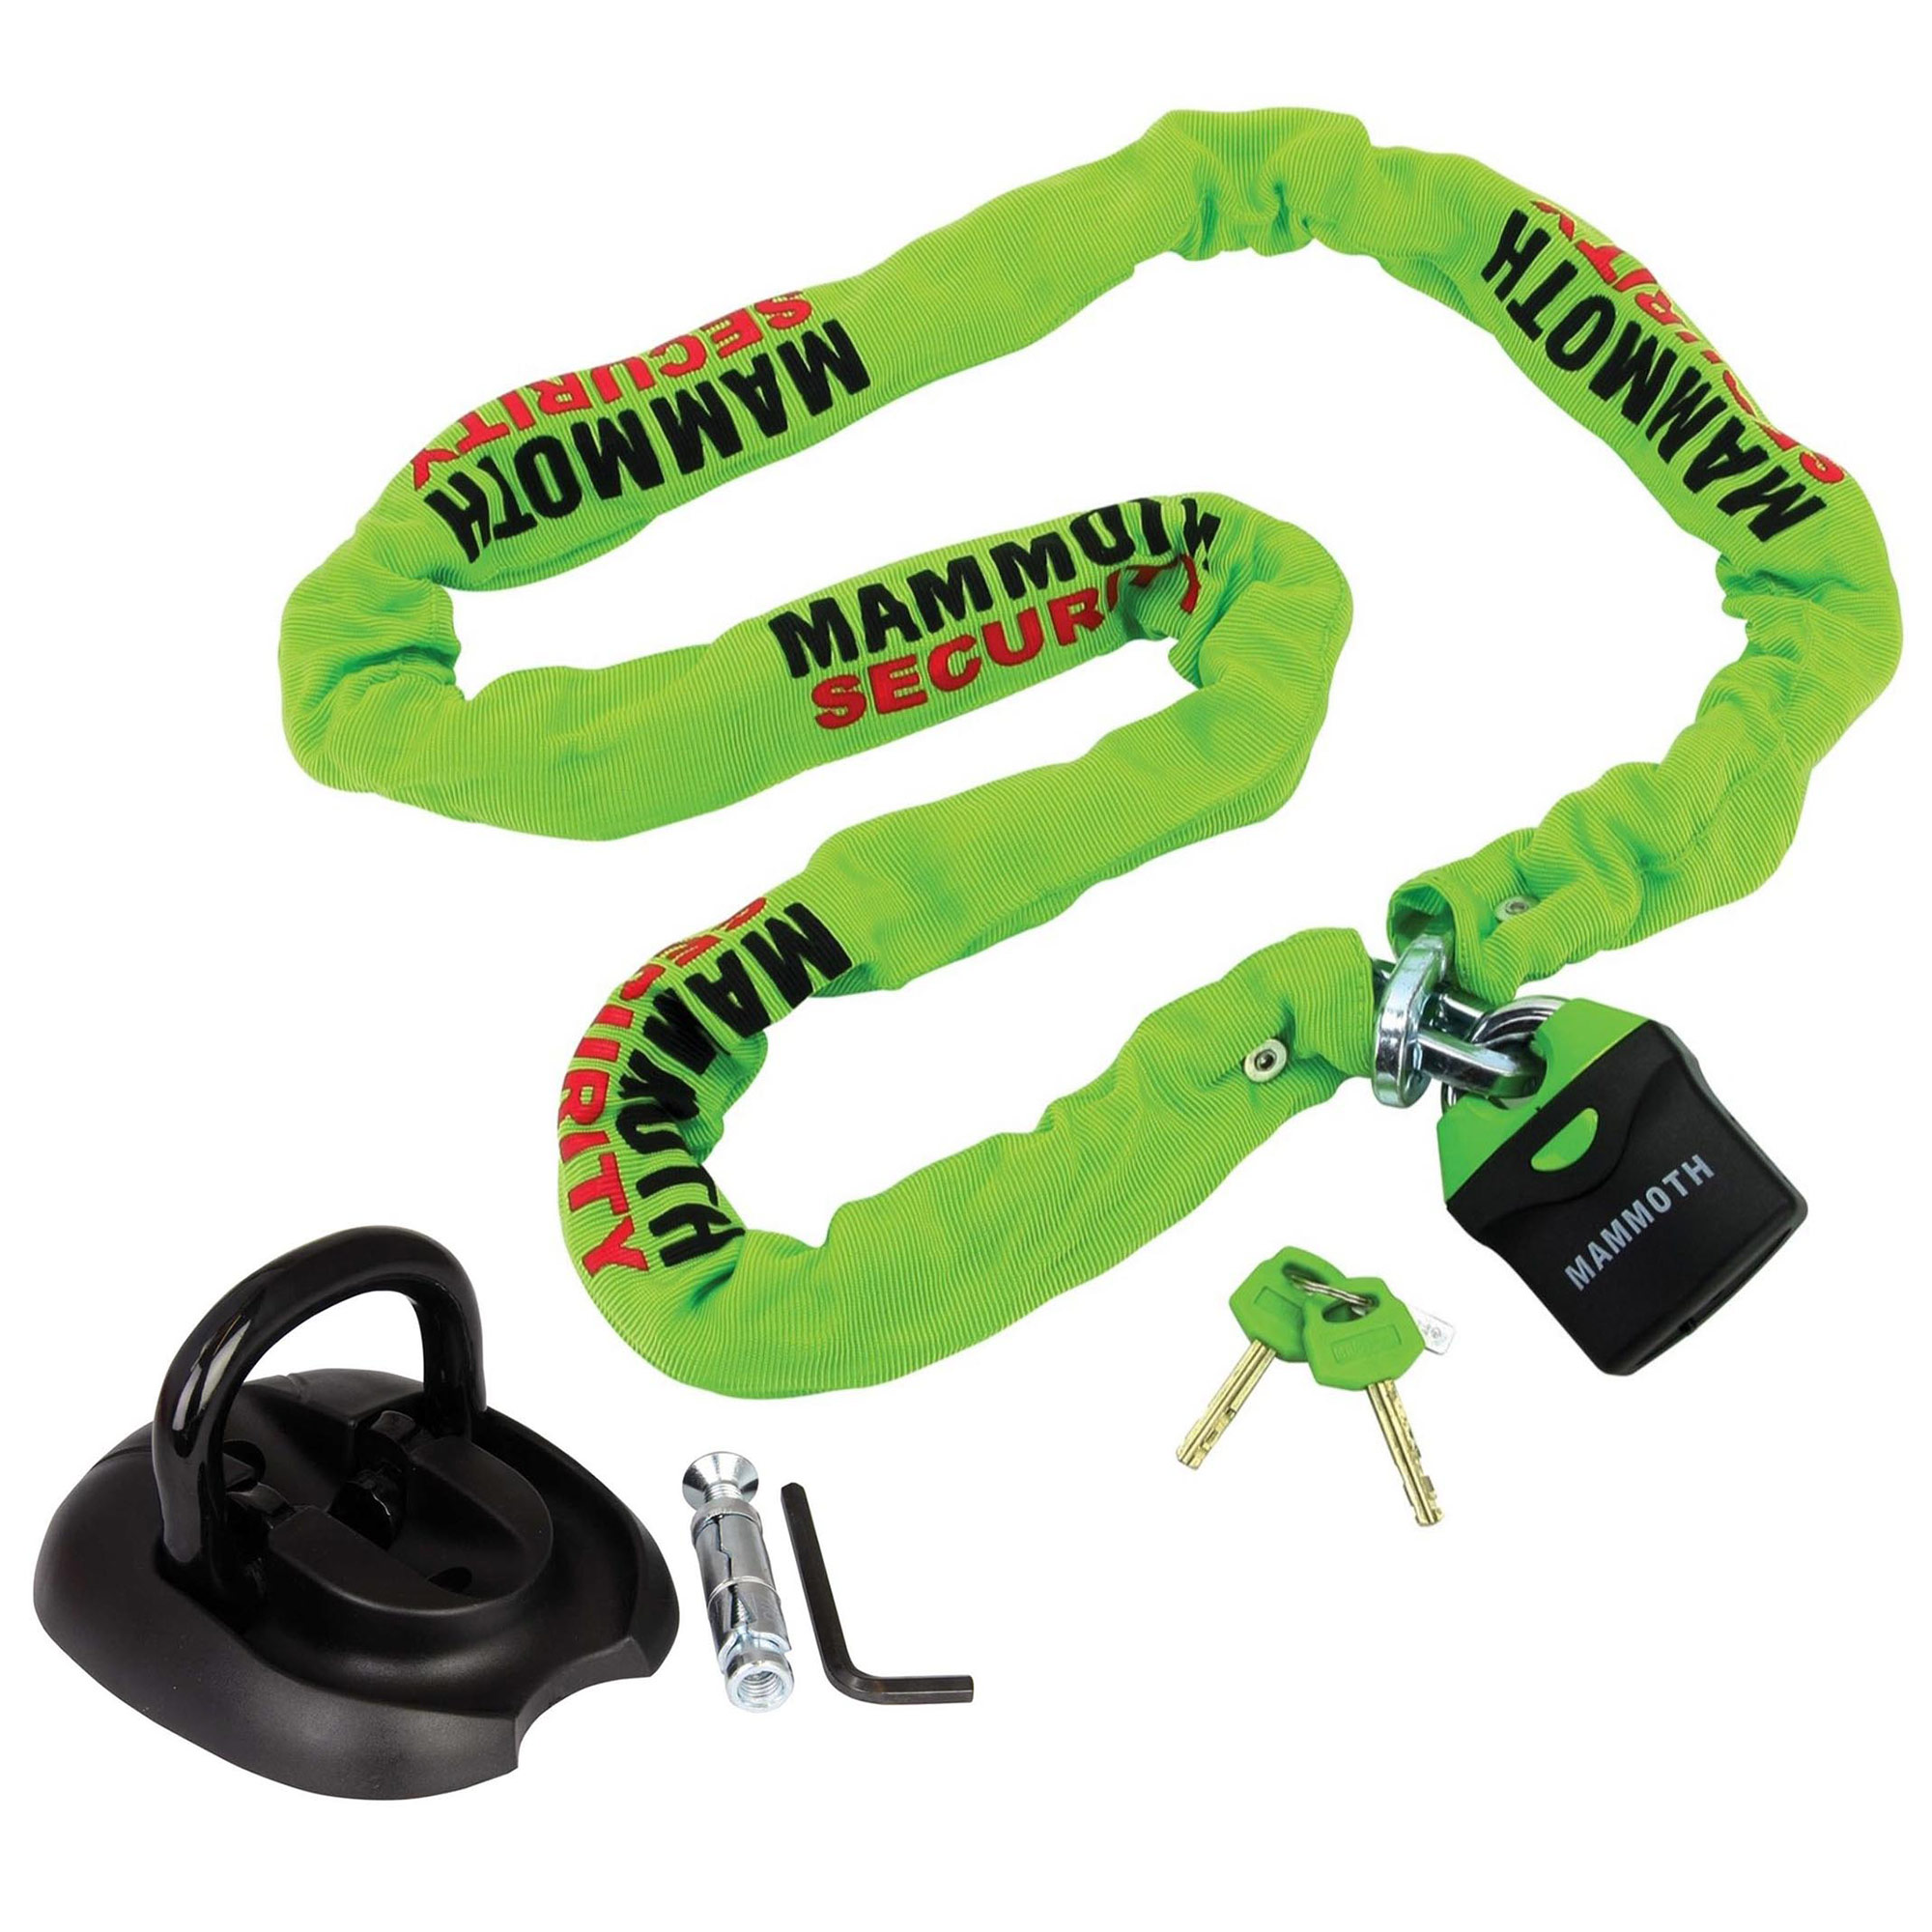 Bike-It Mammoth Motorcycle Security 10mm Square Link 1.8m Steel Chain /& Lock